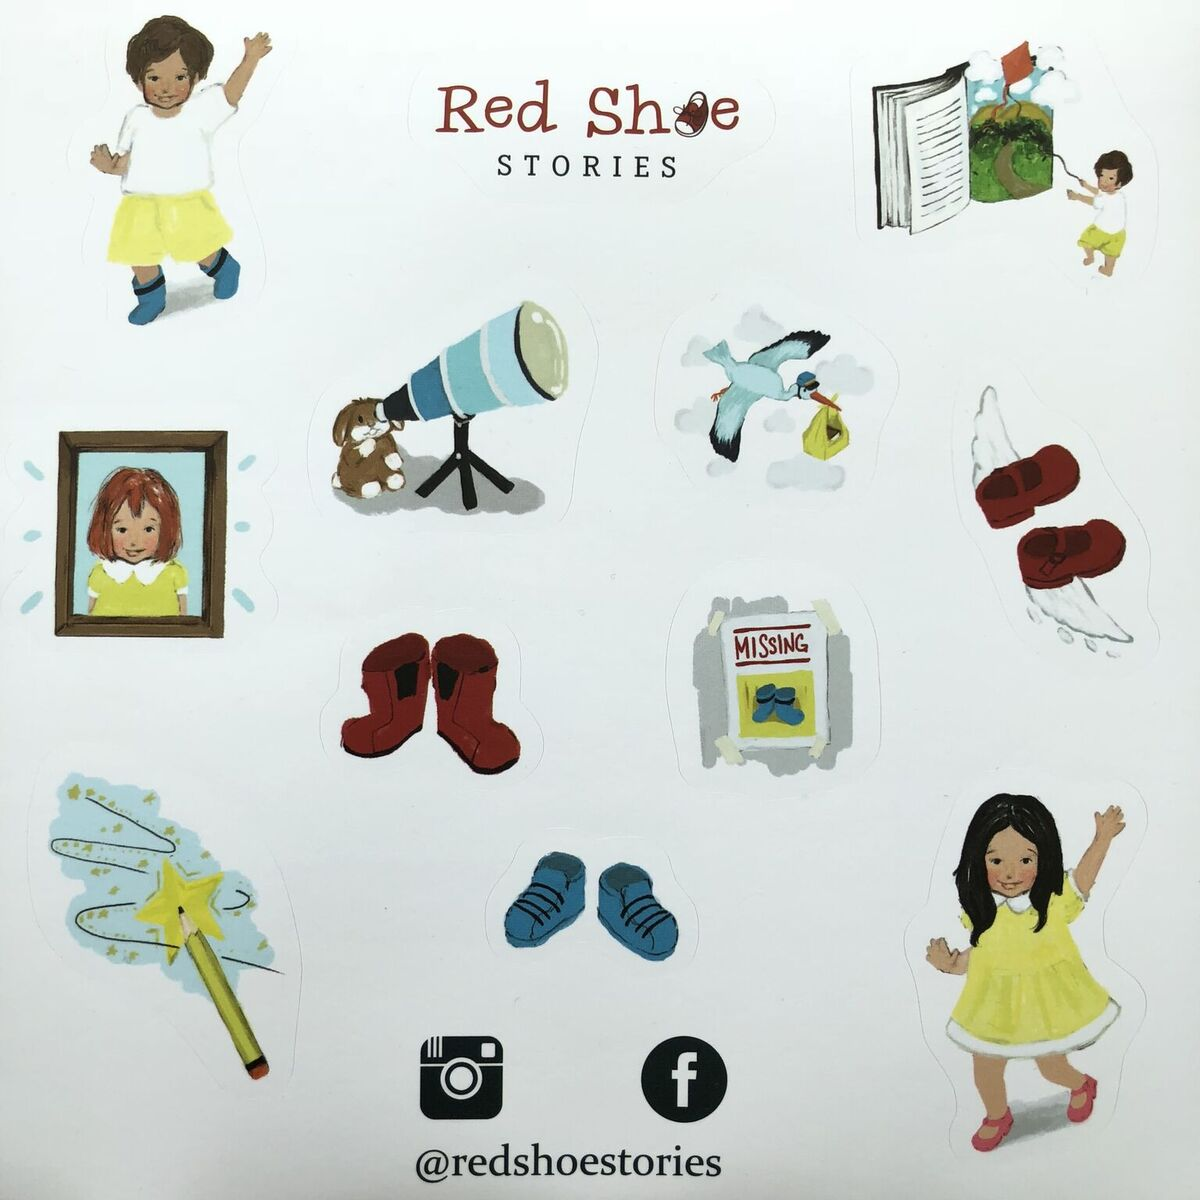 Custom Stickers for Red Shoe Stories, made by Gumtoo Stickers